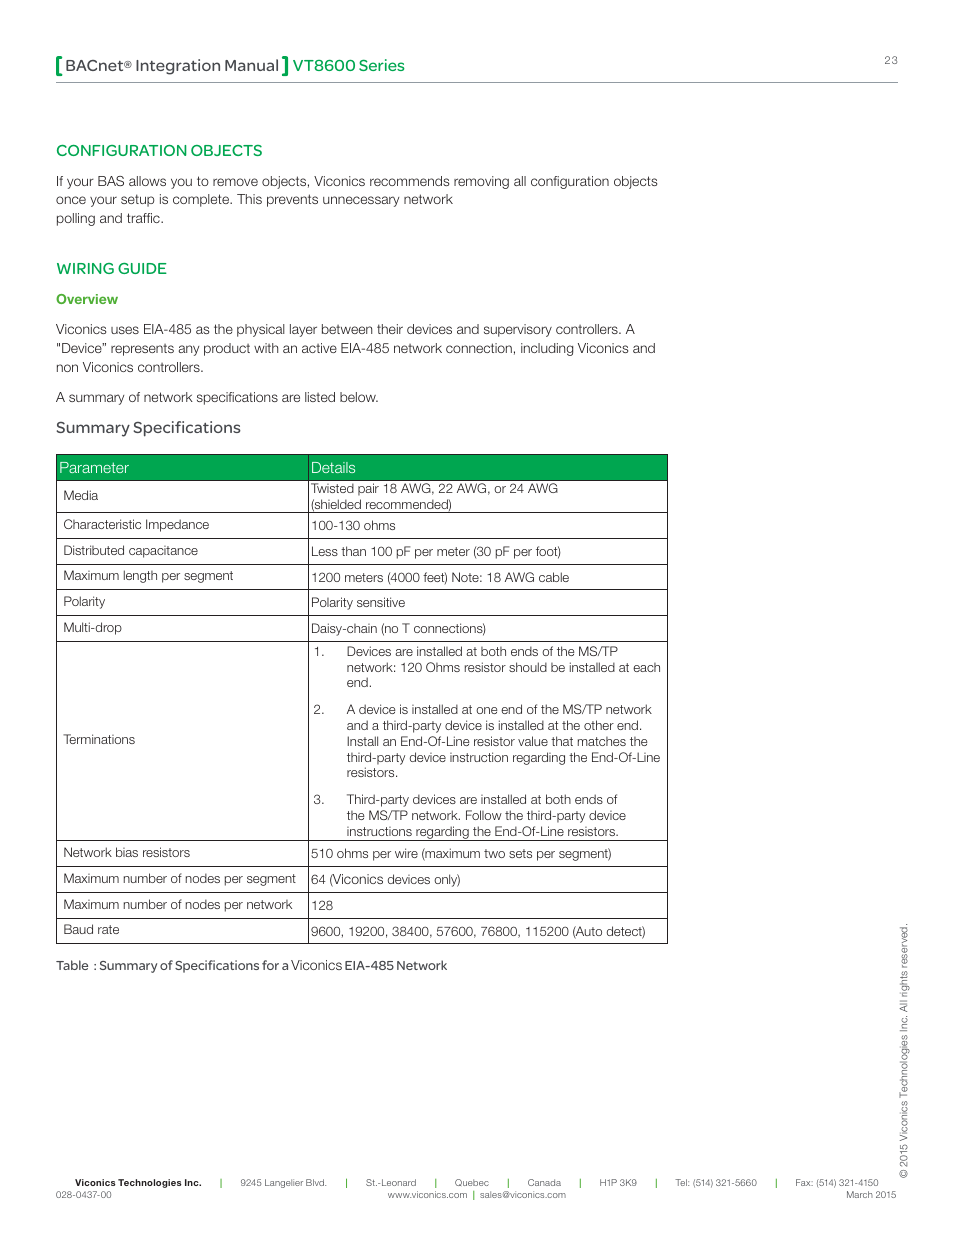 Vt8600 Series Bacnet Integration Manual Configuration Objects Wiring Guide Summary Specifications